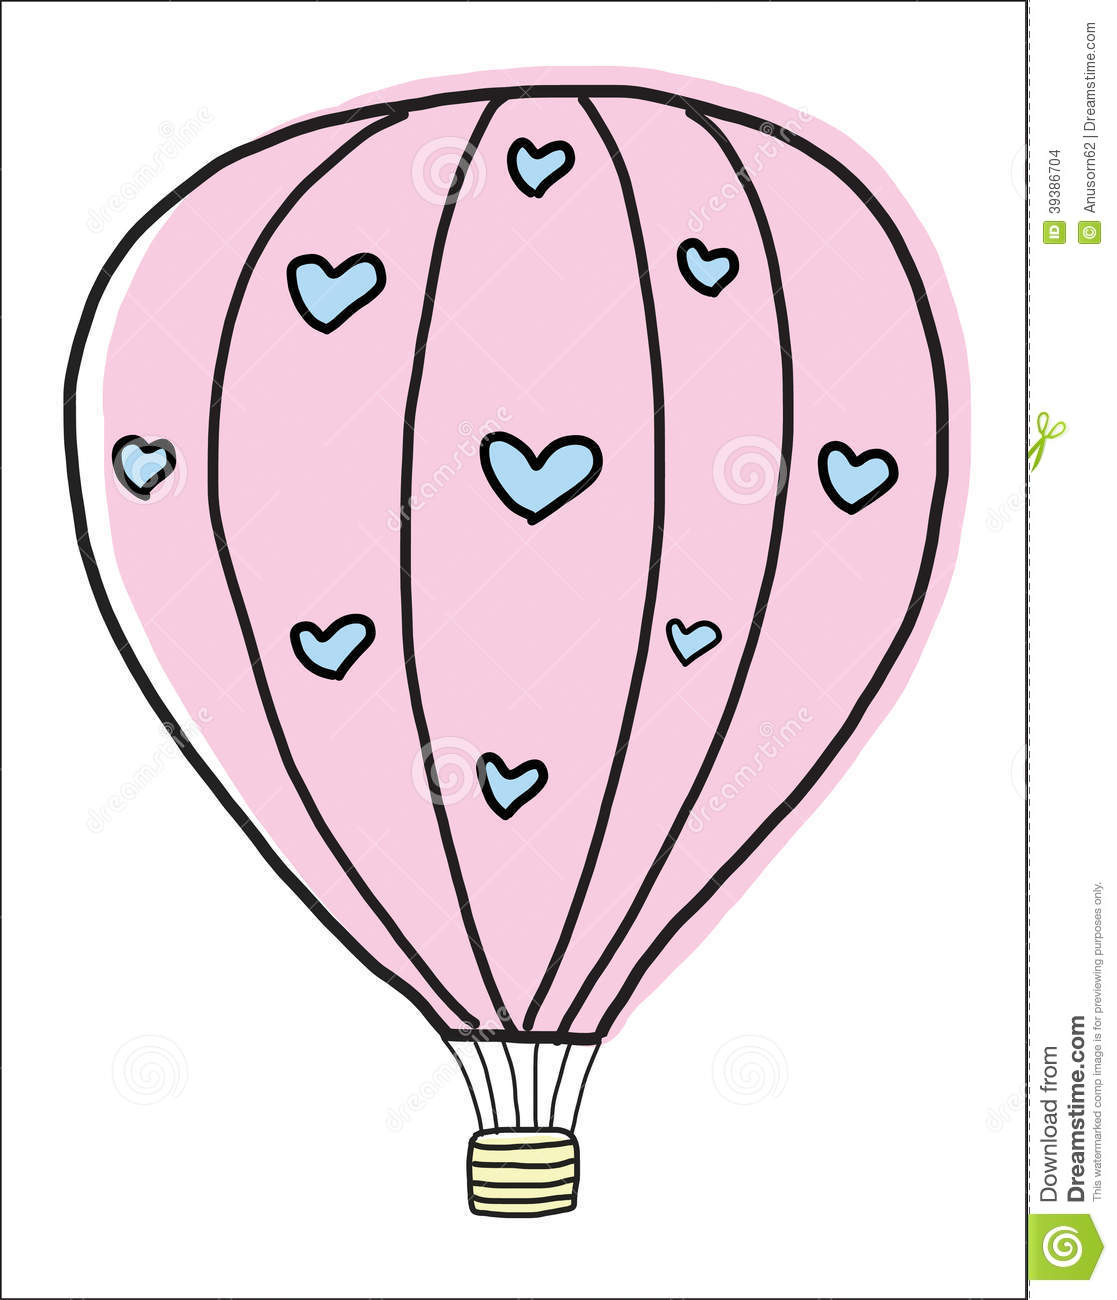 Uncategorized Draw A Balloon hand draw vintage balloon stock vector image of 39386704 balloon